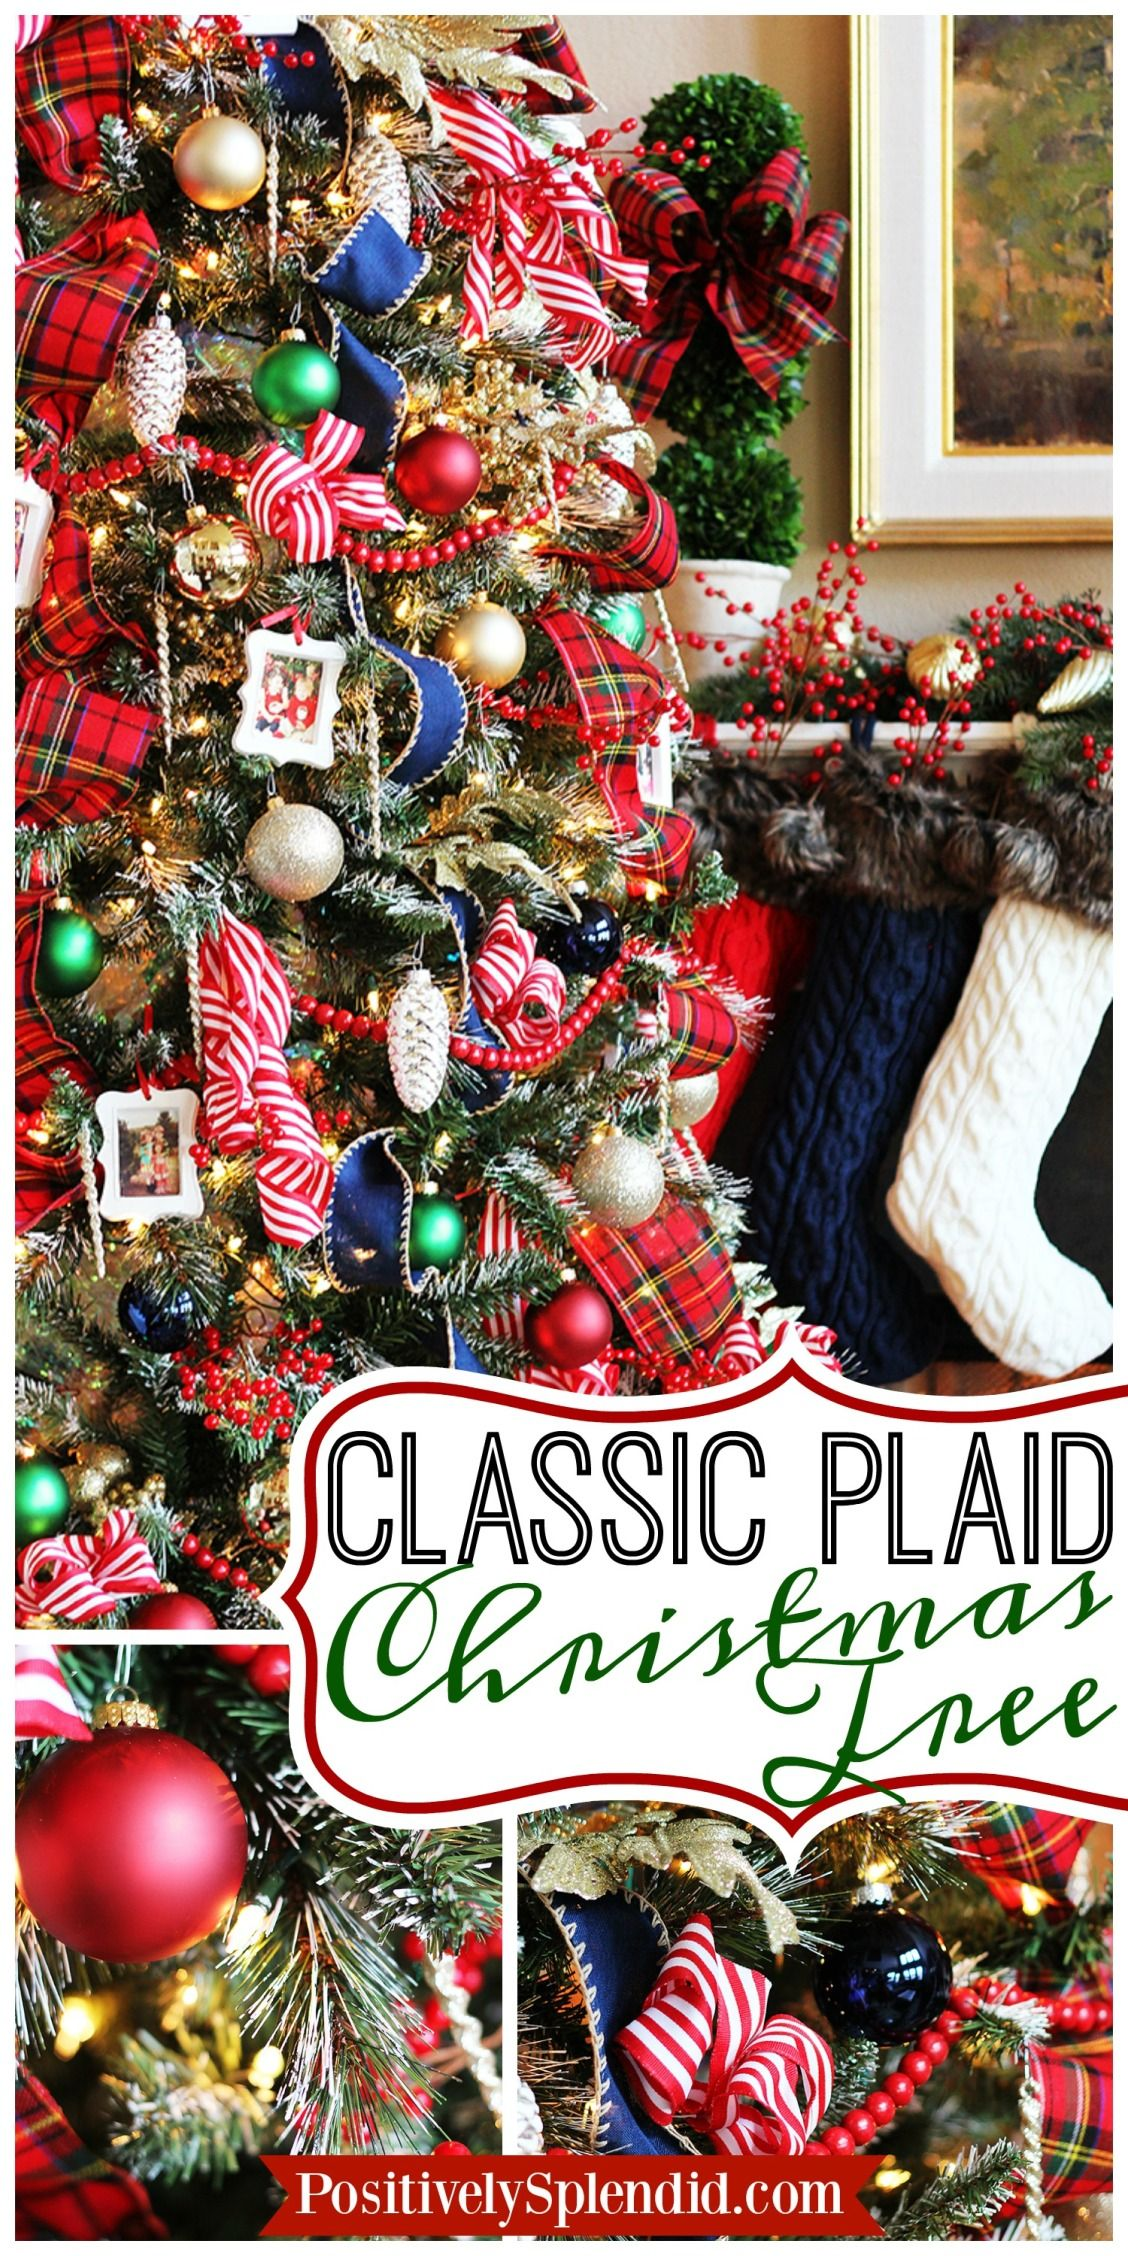 traditional plaid christmas tree decorations are a classic traditional tartan plaid in red white green and blue make this tree a knock out - Plaid Christmas Tree Decorations